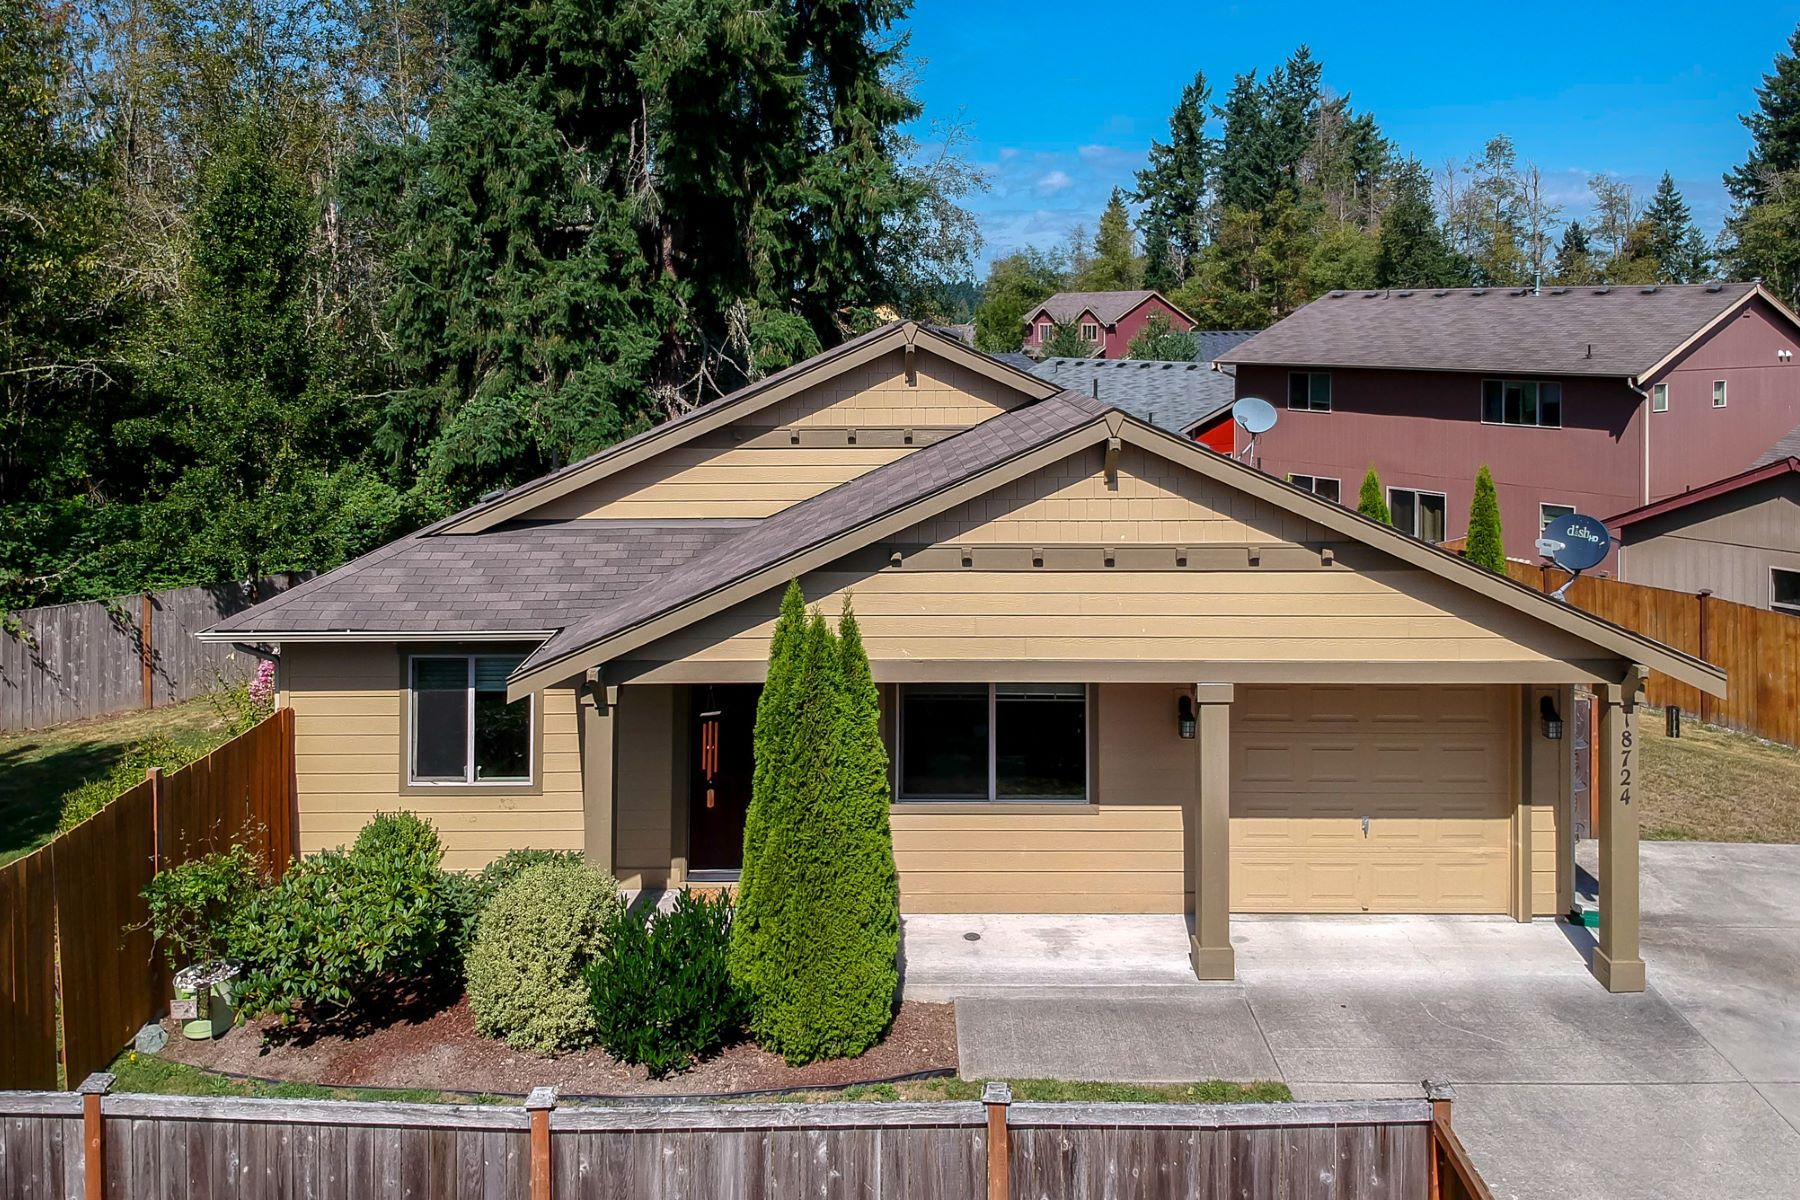 Single Family Homes for Sale at Spanaway Mountain View 18724 19th Av Ct E Spanaway, Washington 98387 United States